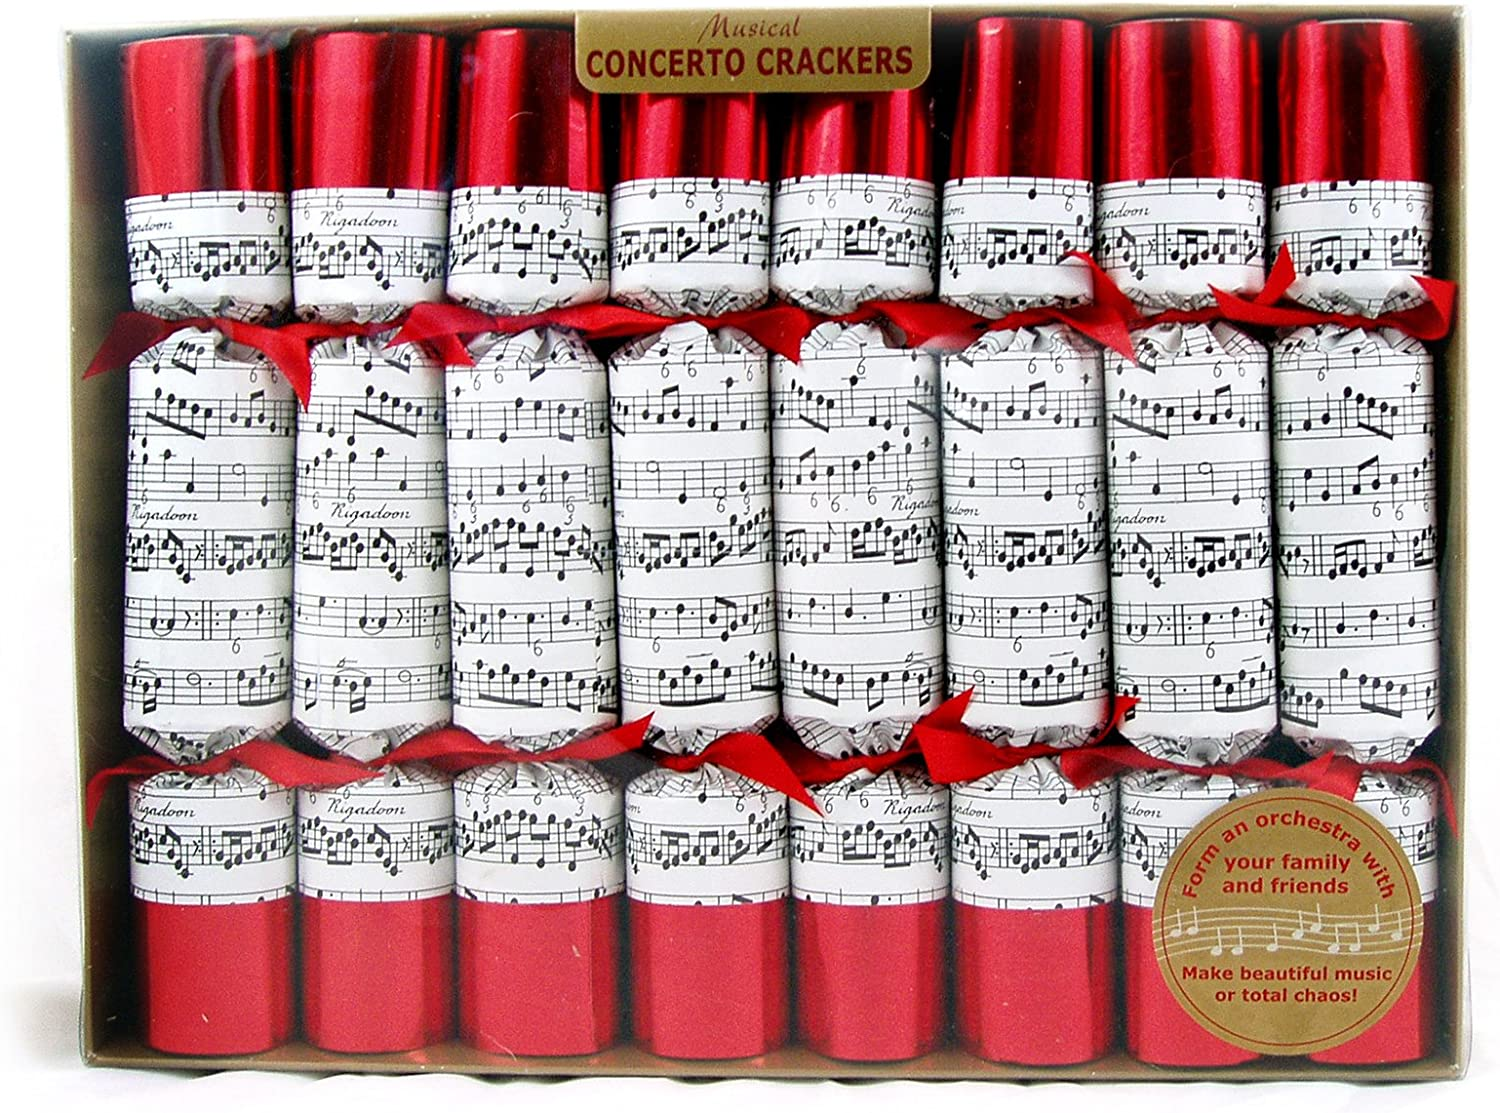 The Deluxe Musical Christmas Cracker Musical Concerto Crackers